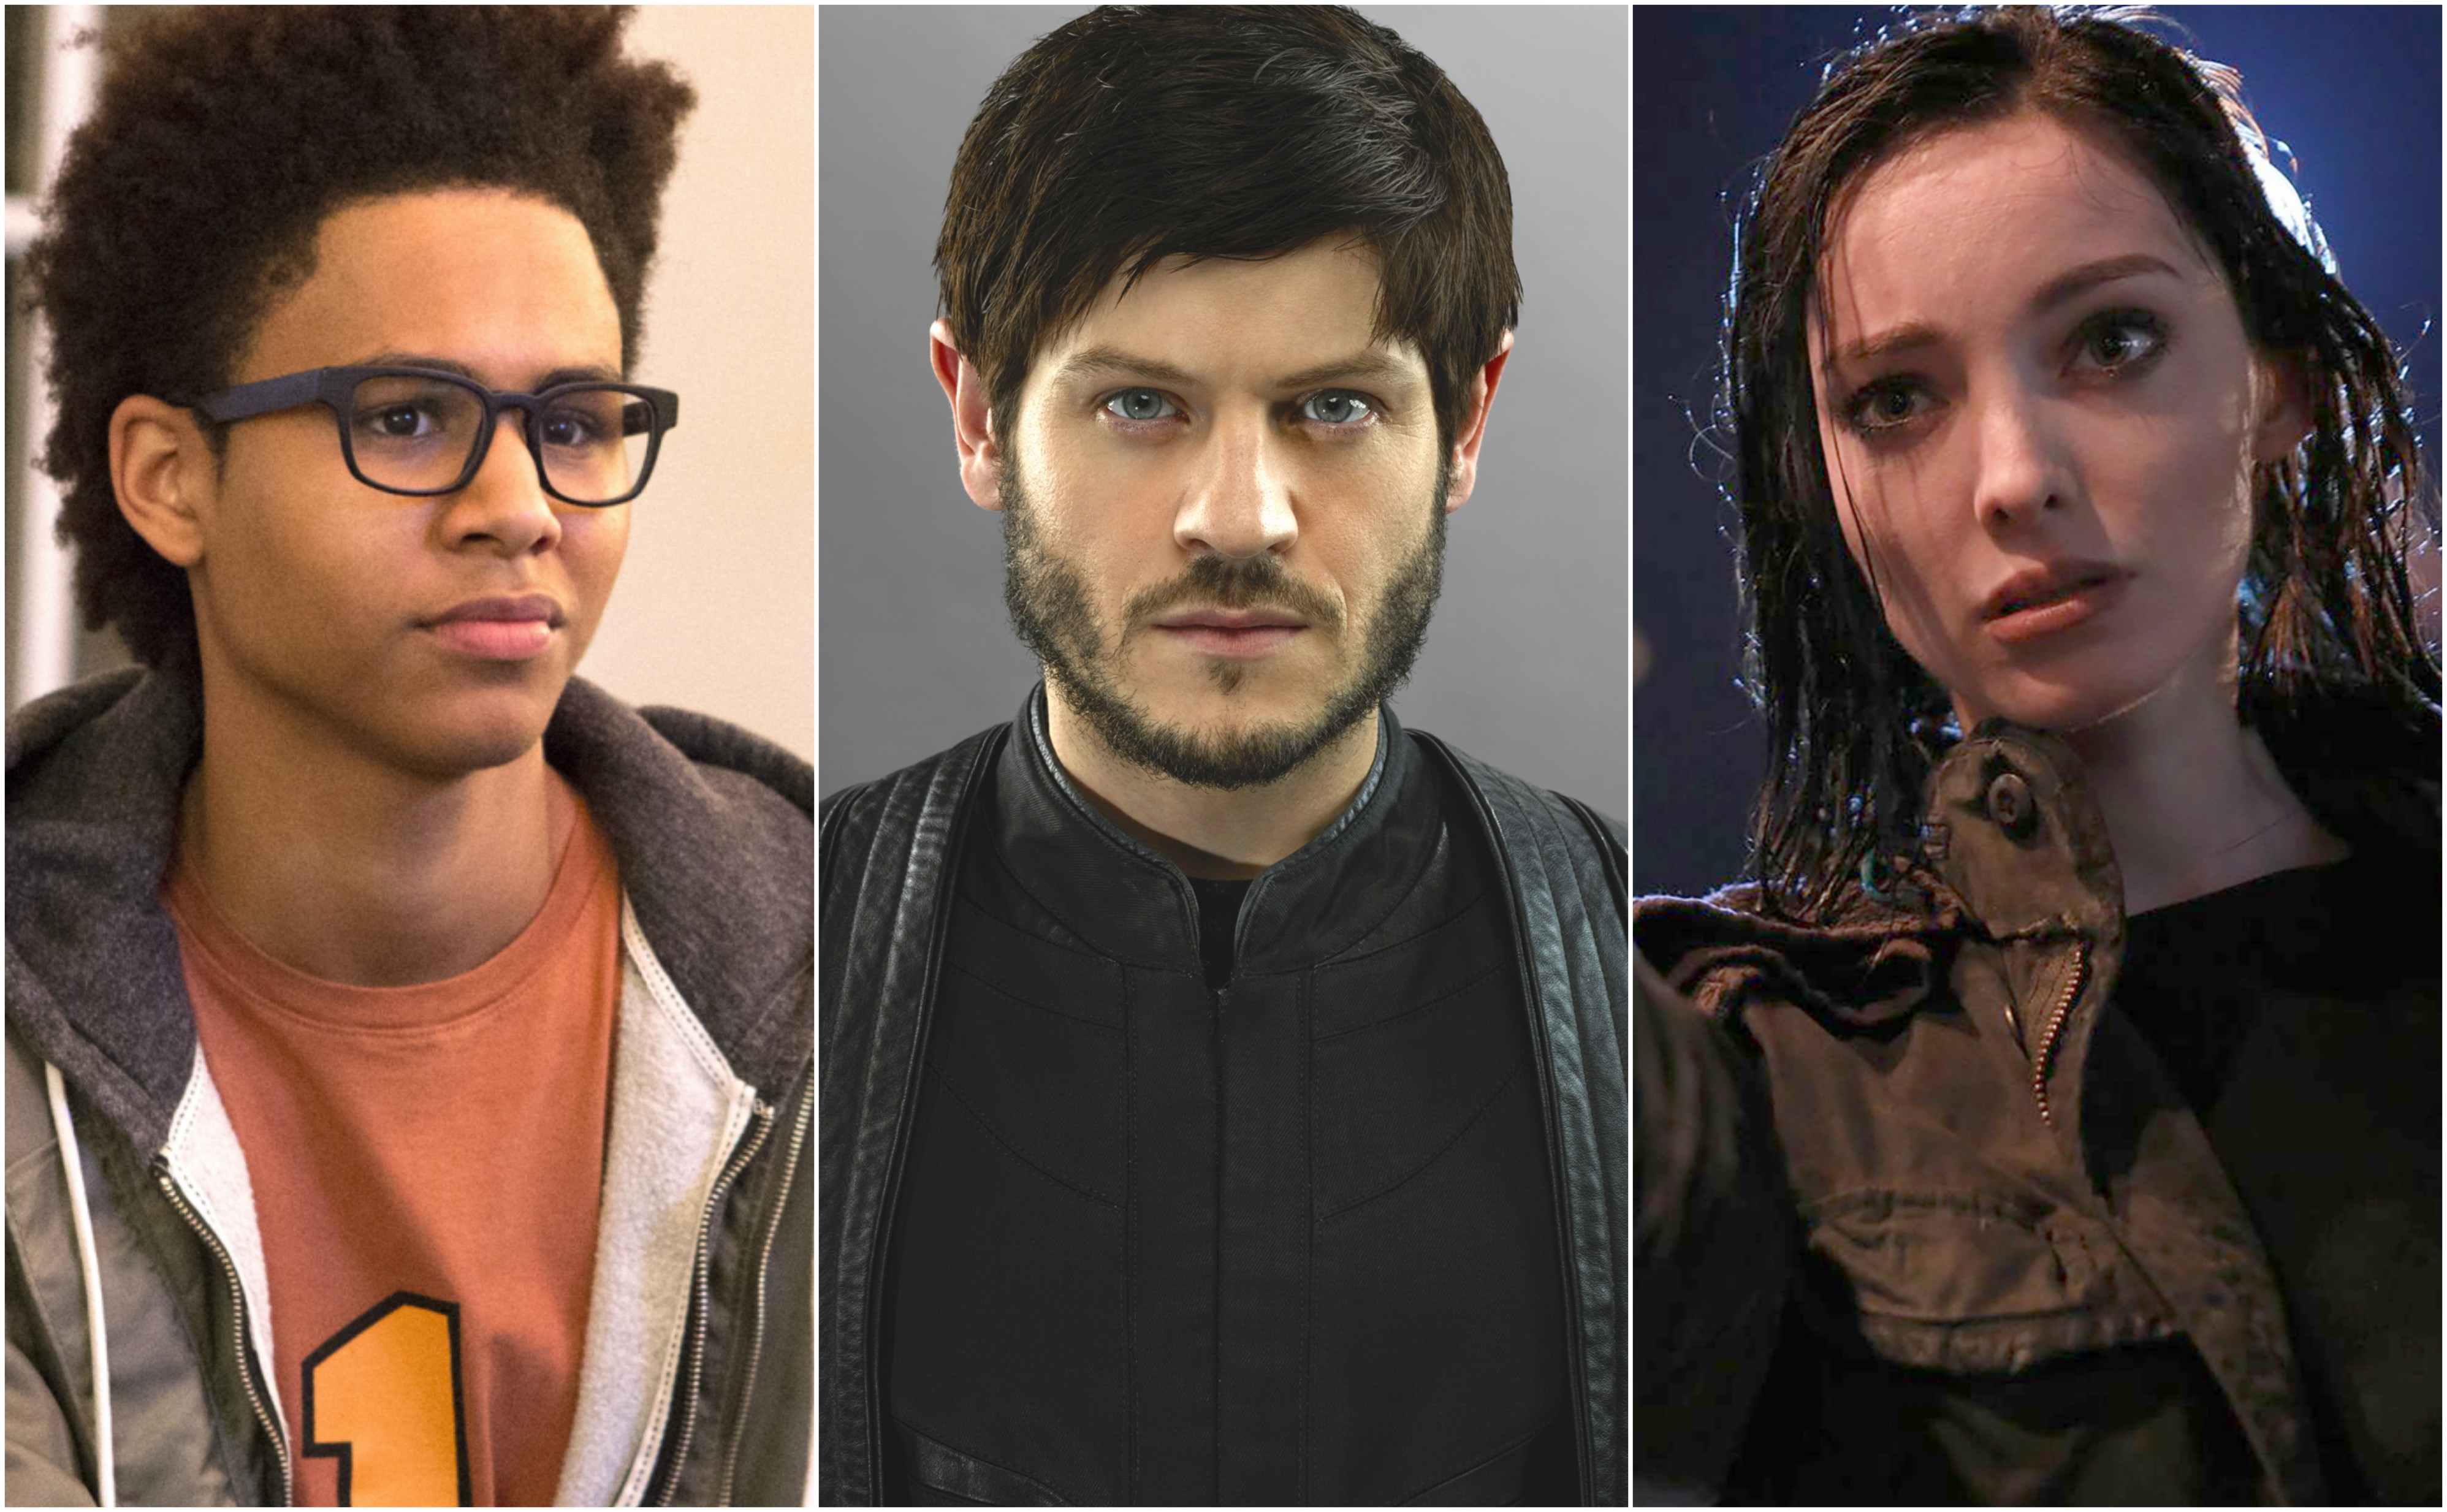 Marvel On Tv Inhumans And The Gifted Lead The New Crop As Others Dull Indiewire